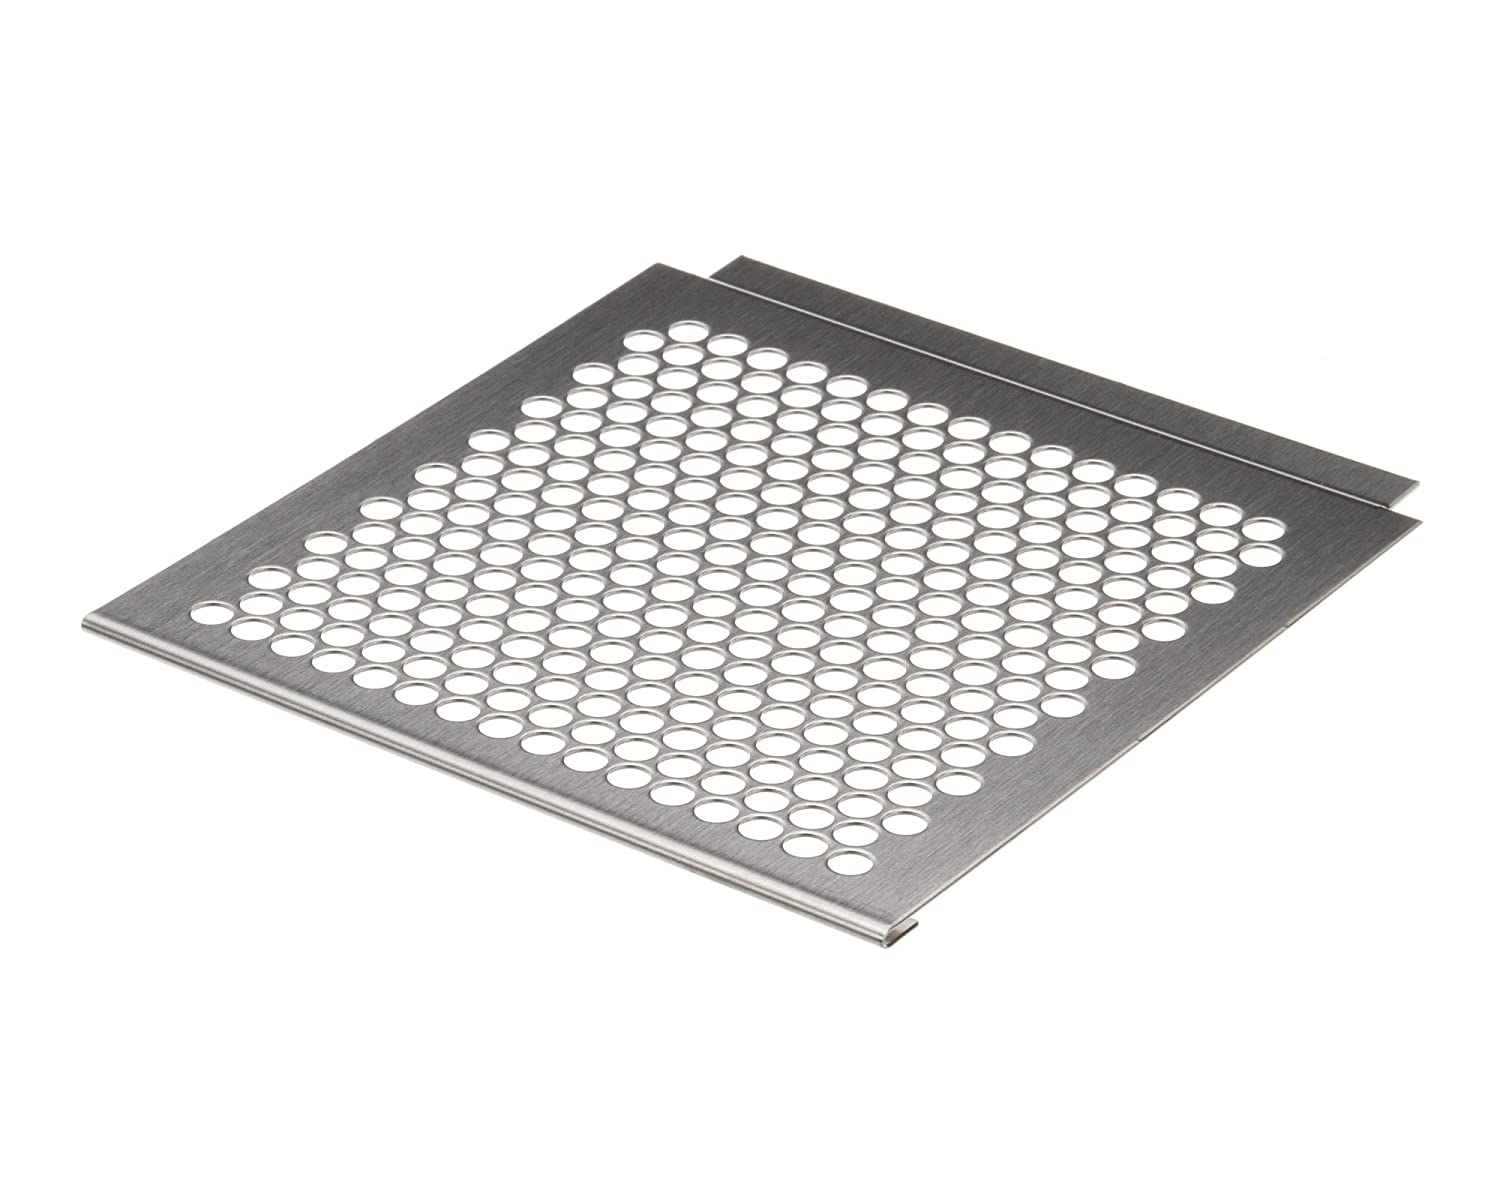 Bunn 11274.0001 Cover Clean Tray-Perforated